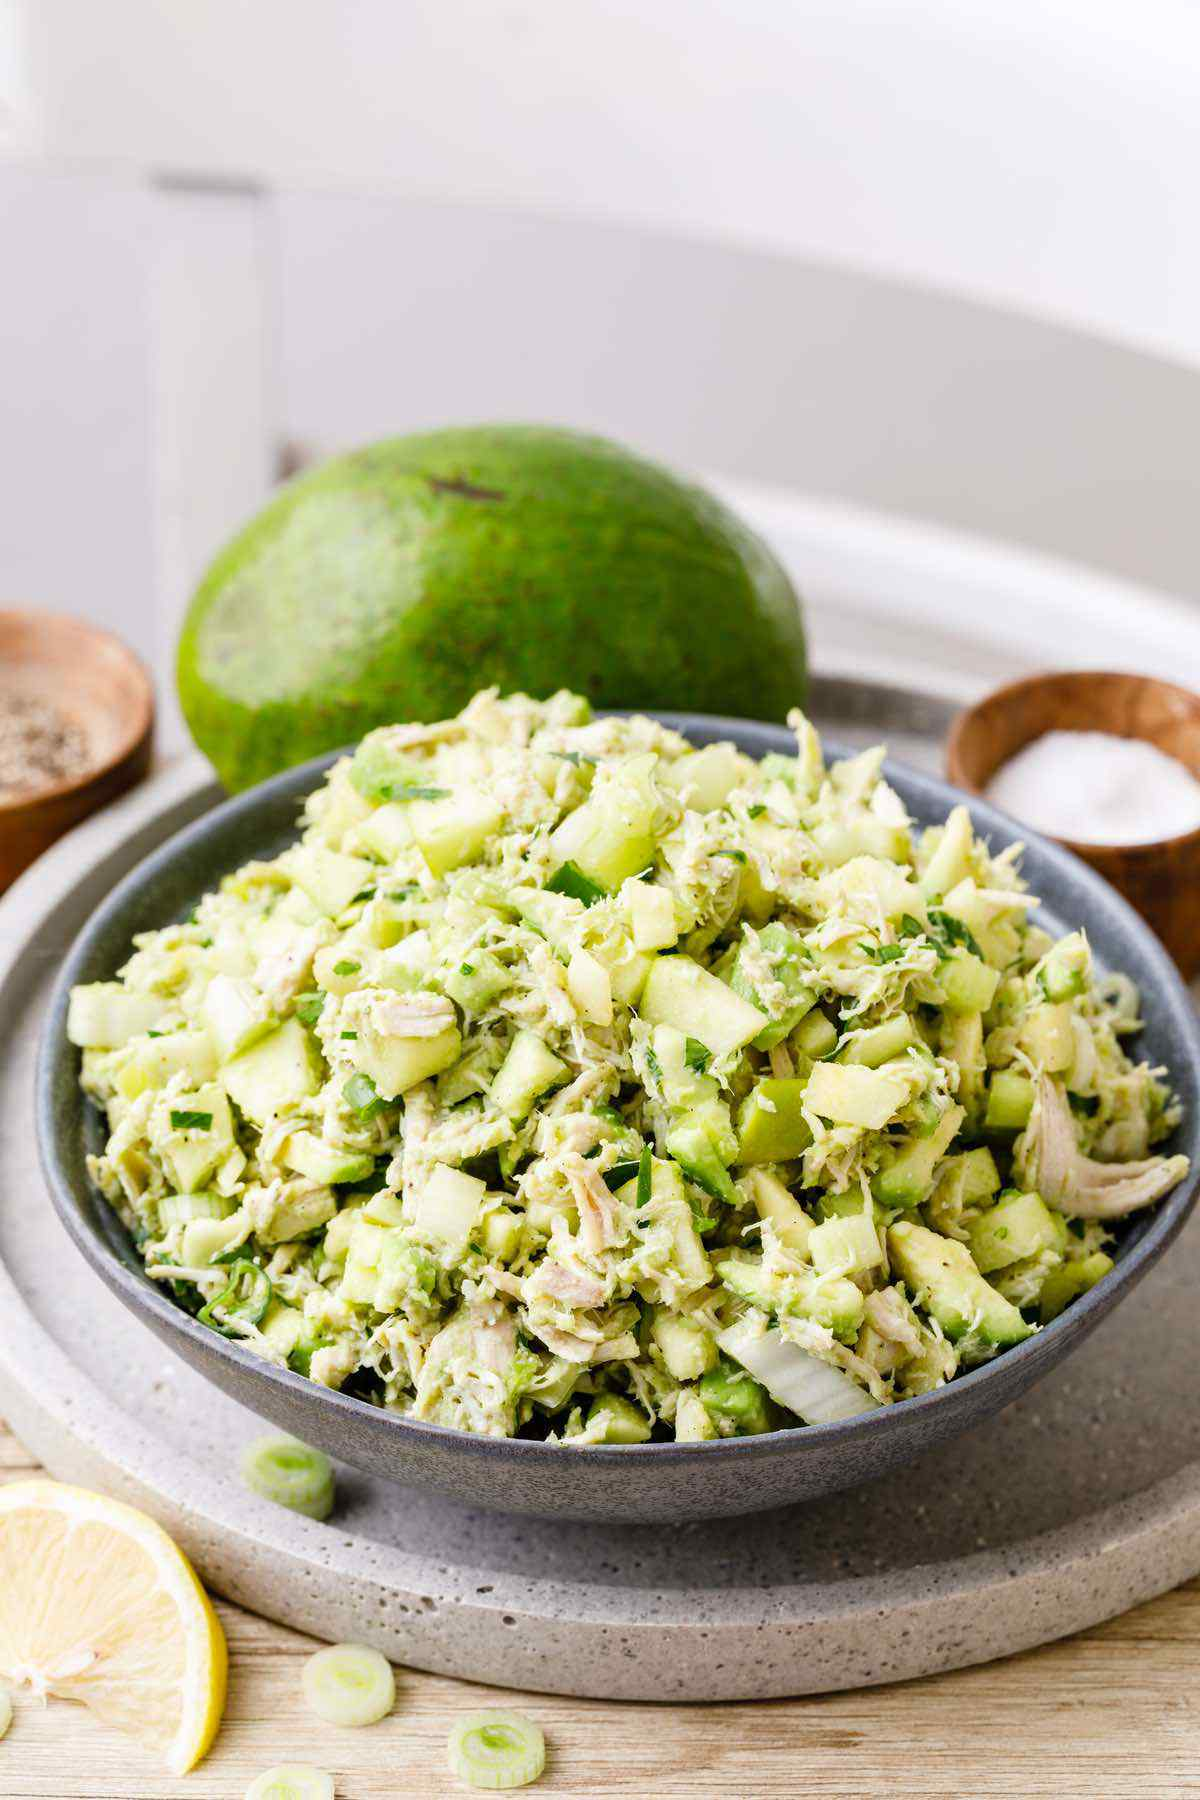 Avocado Chicken Salad Without Mayo